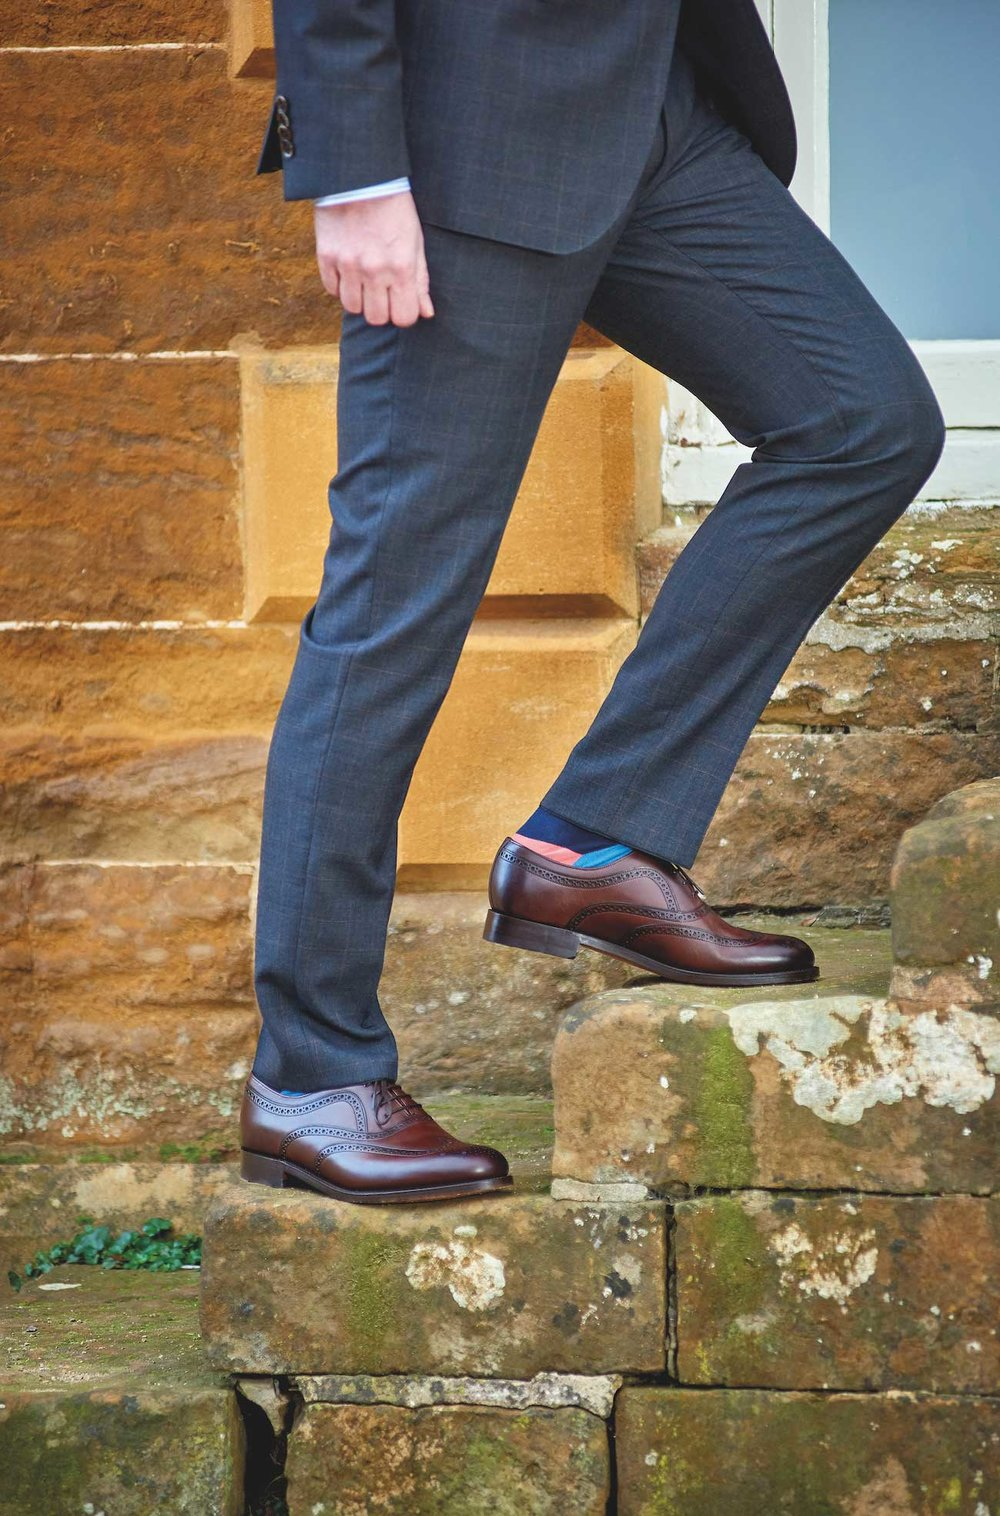 Footwear - Make a statement with your footwear with our collection of premium leather shoes from some of the finest shoemakers around such as Barker and Loakes, with styles ranging from elegant hand painted brogues, classic Oxfords through to loafers.